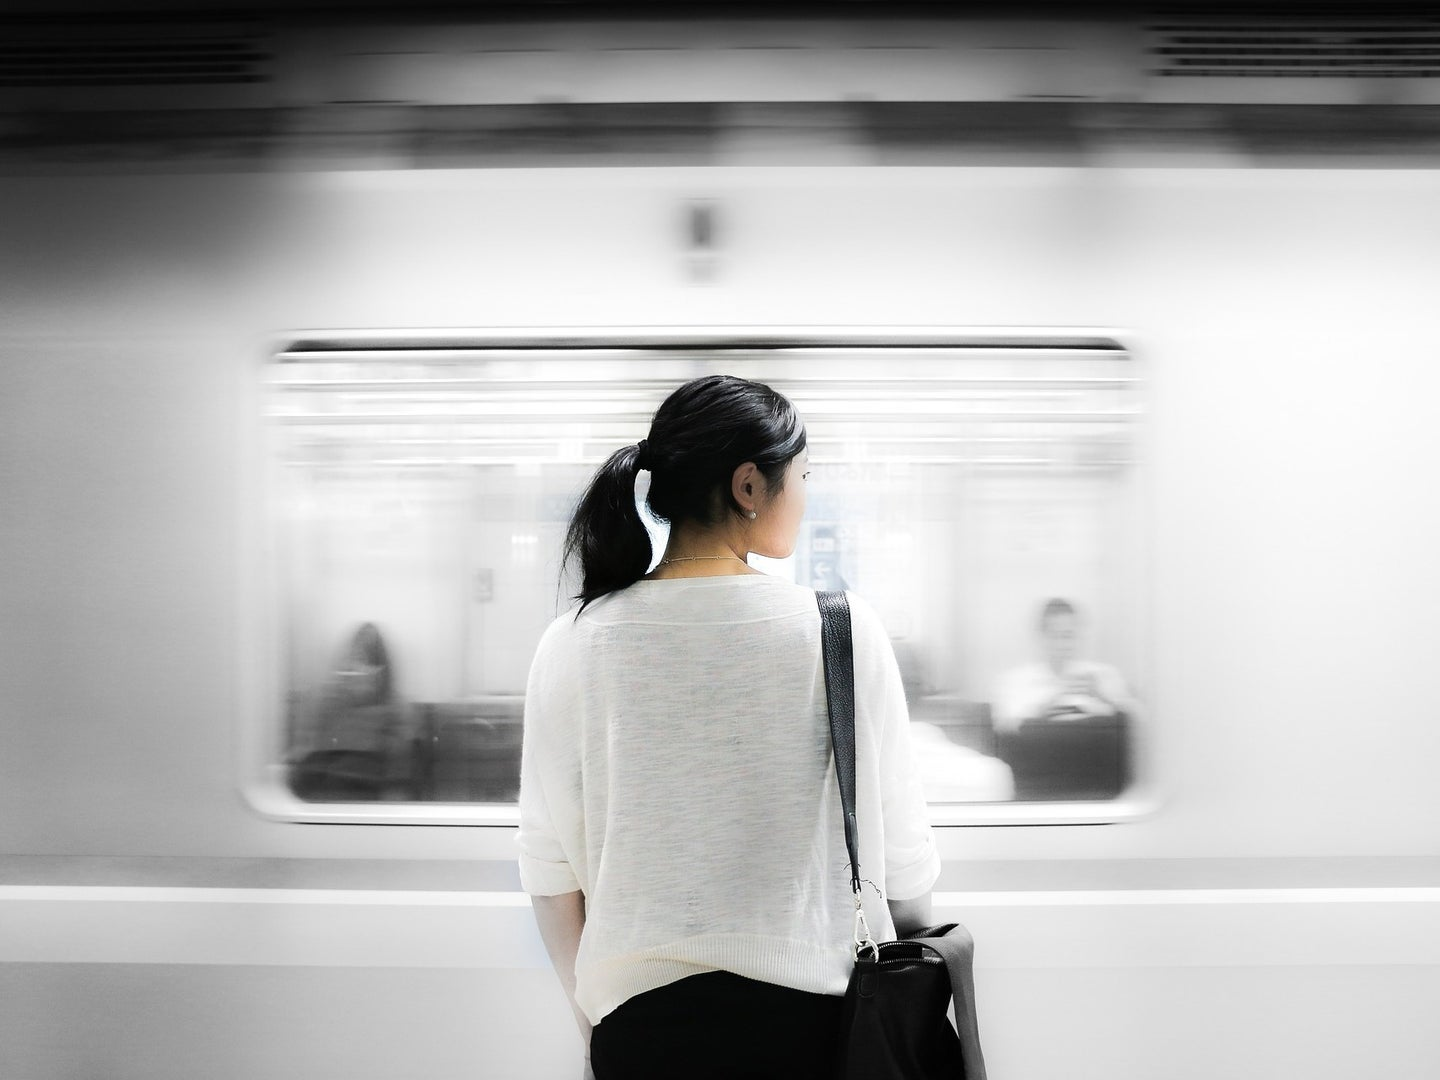 a woman getting ready to get on a mass transit subway